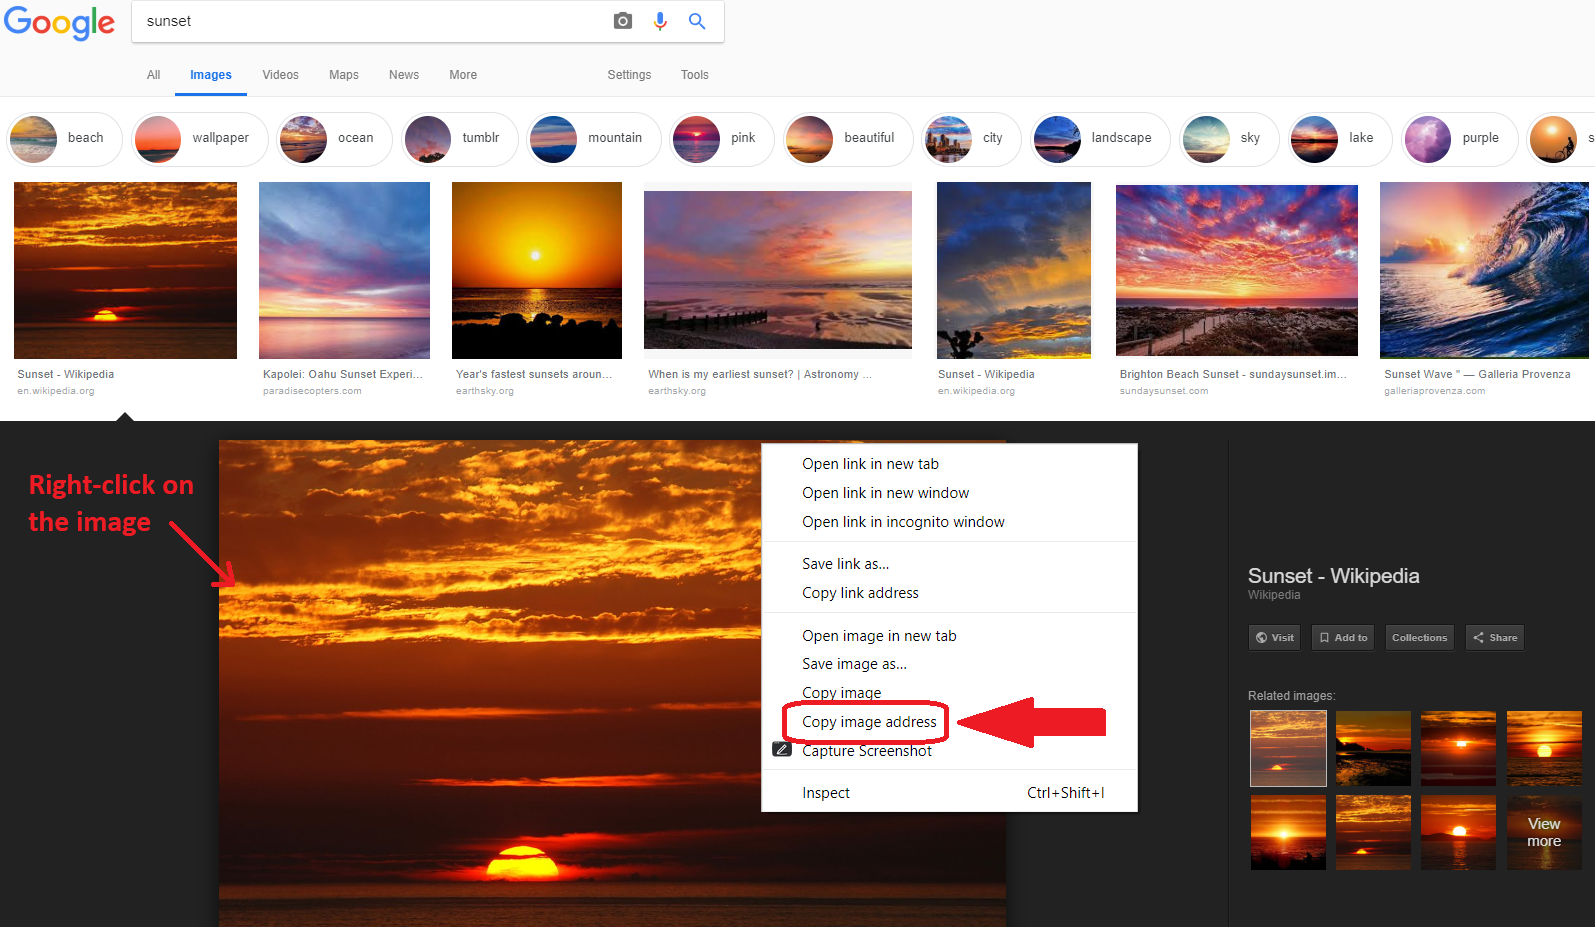 On Google Images, right-click on the image after selecting one and click on 'Copy image address'. You can then paste this link into an image item on Sutori